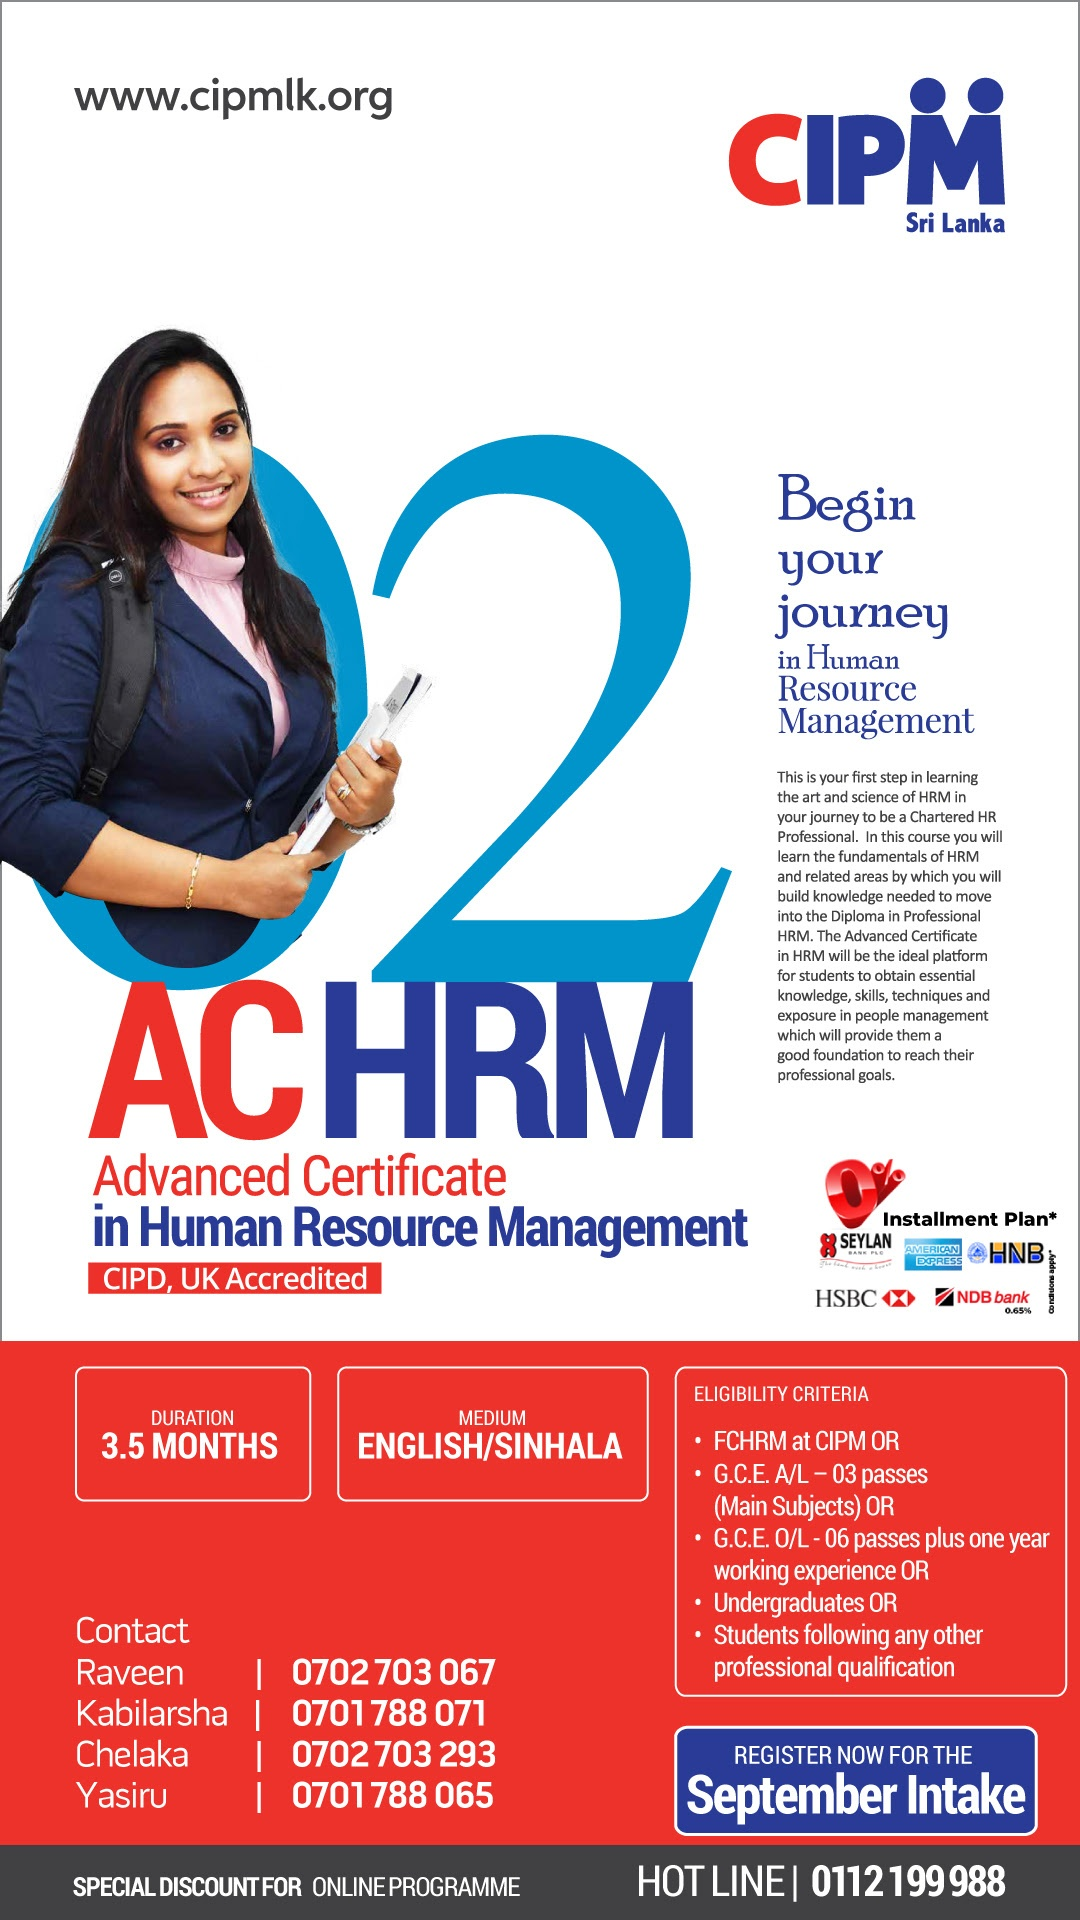 Prepare for a promising career in HR